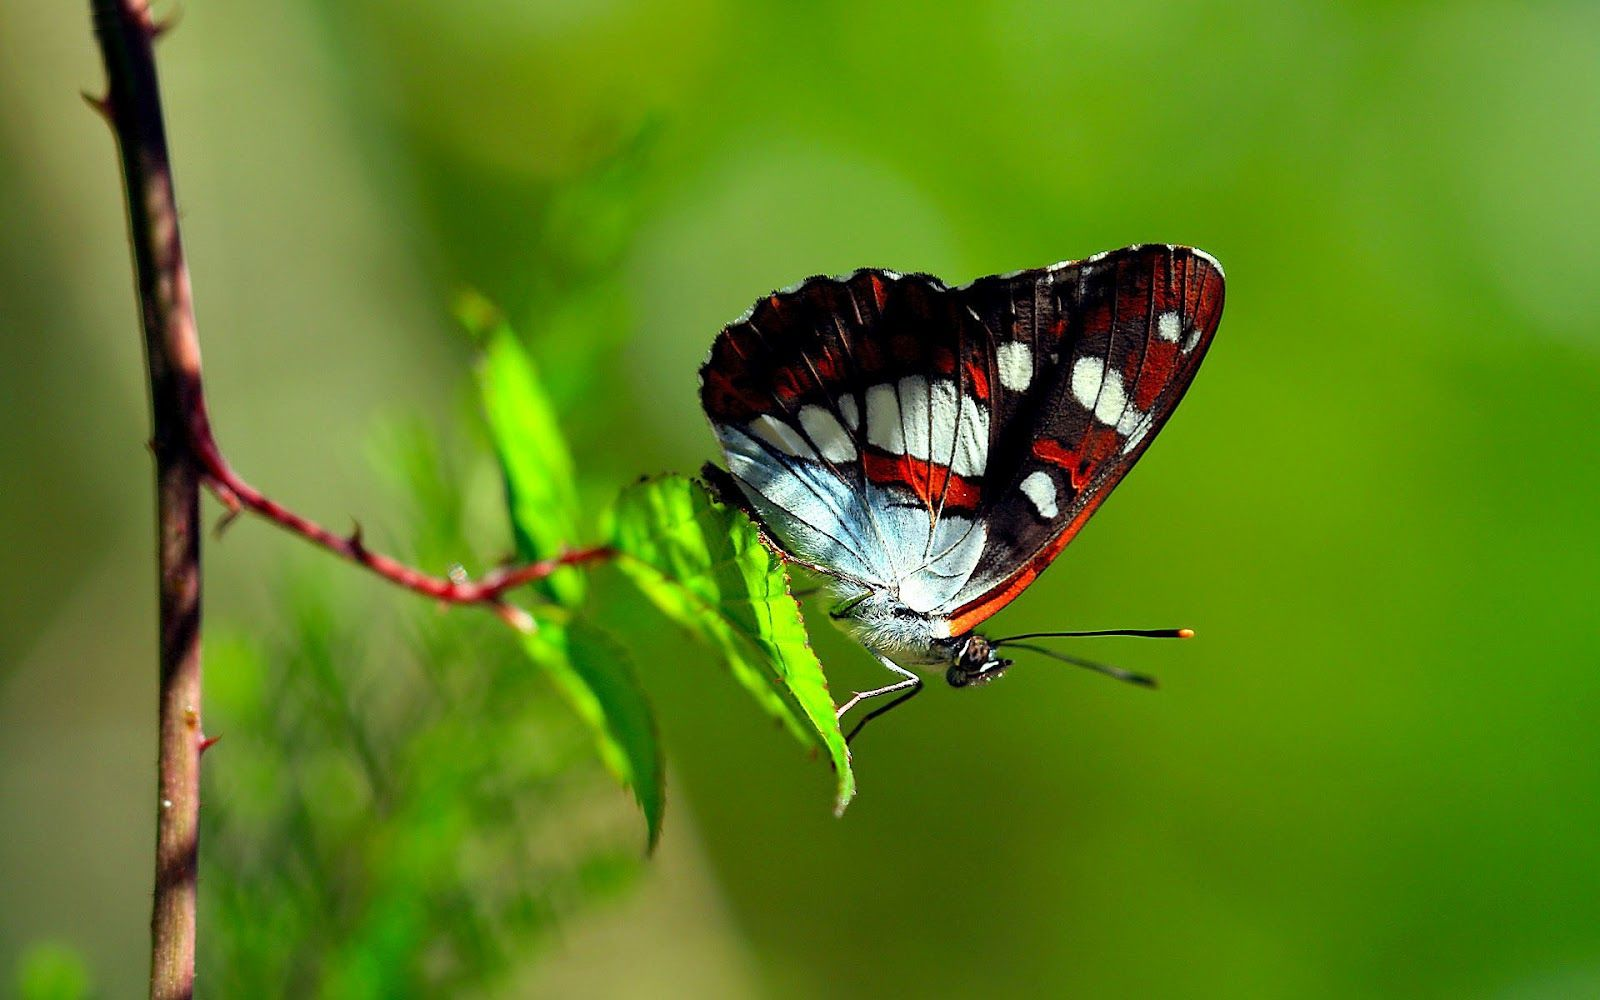 hd-butterfly-with-a-beautiful-butterfly-sitting-on-a-plant